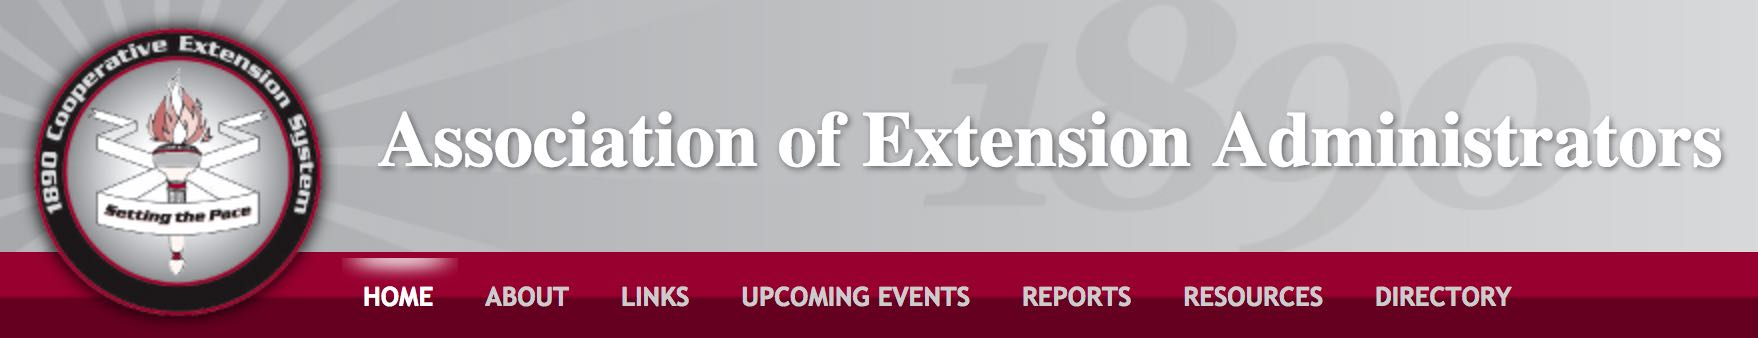 Association of Extension Administrators